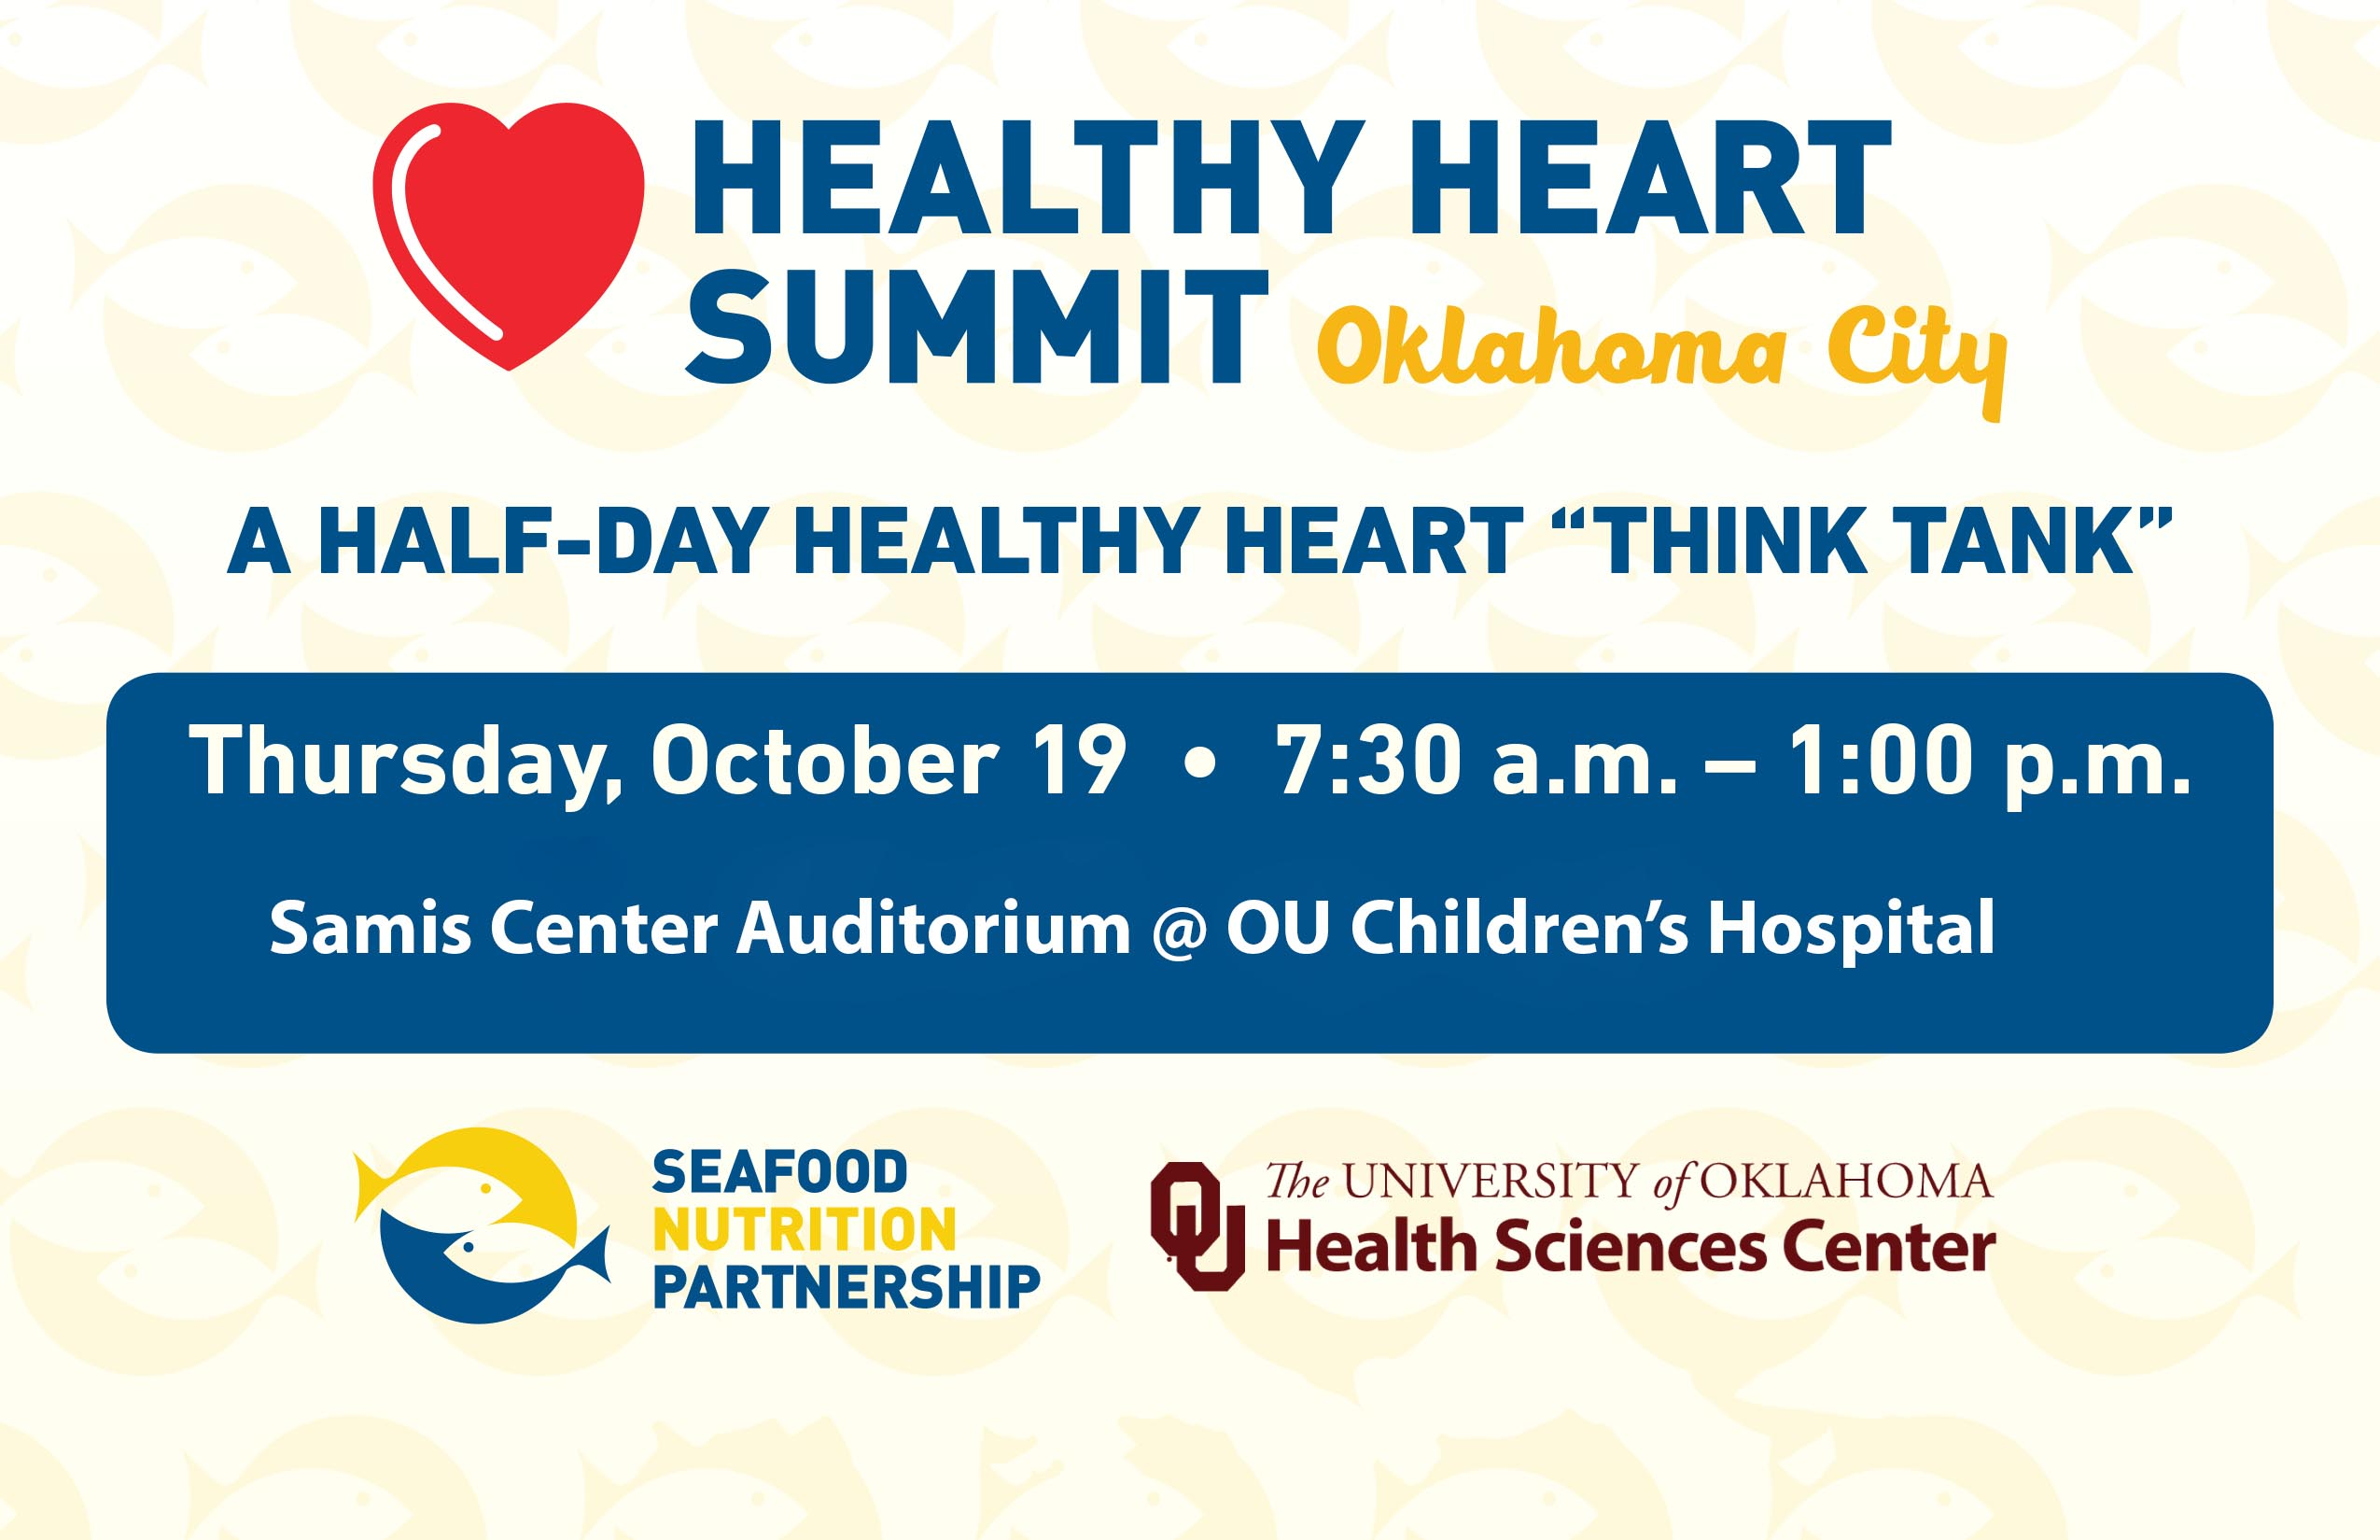 Healthy Heart Summit - Thursday Oct 19 - OU Children's Hospital